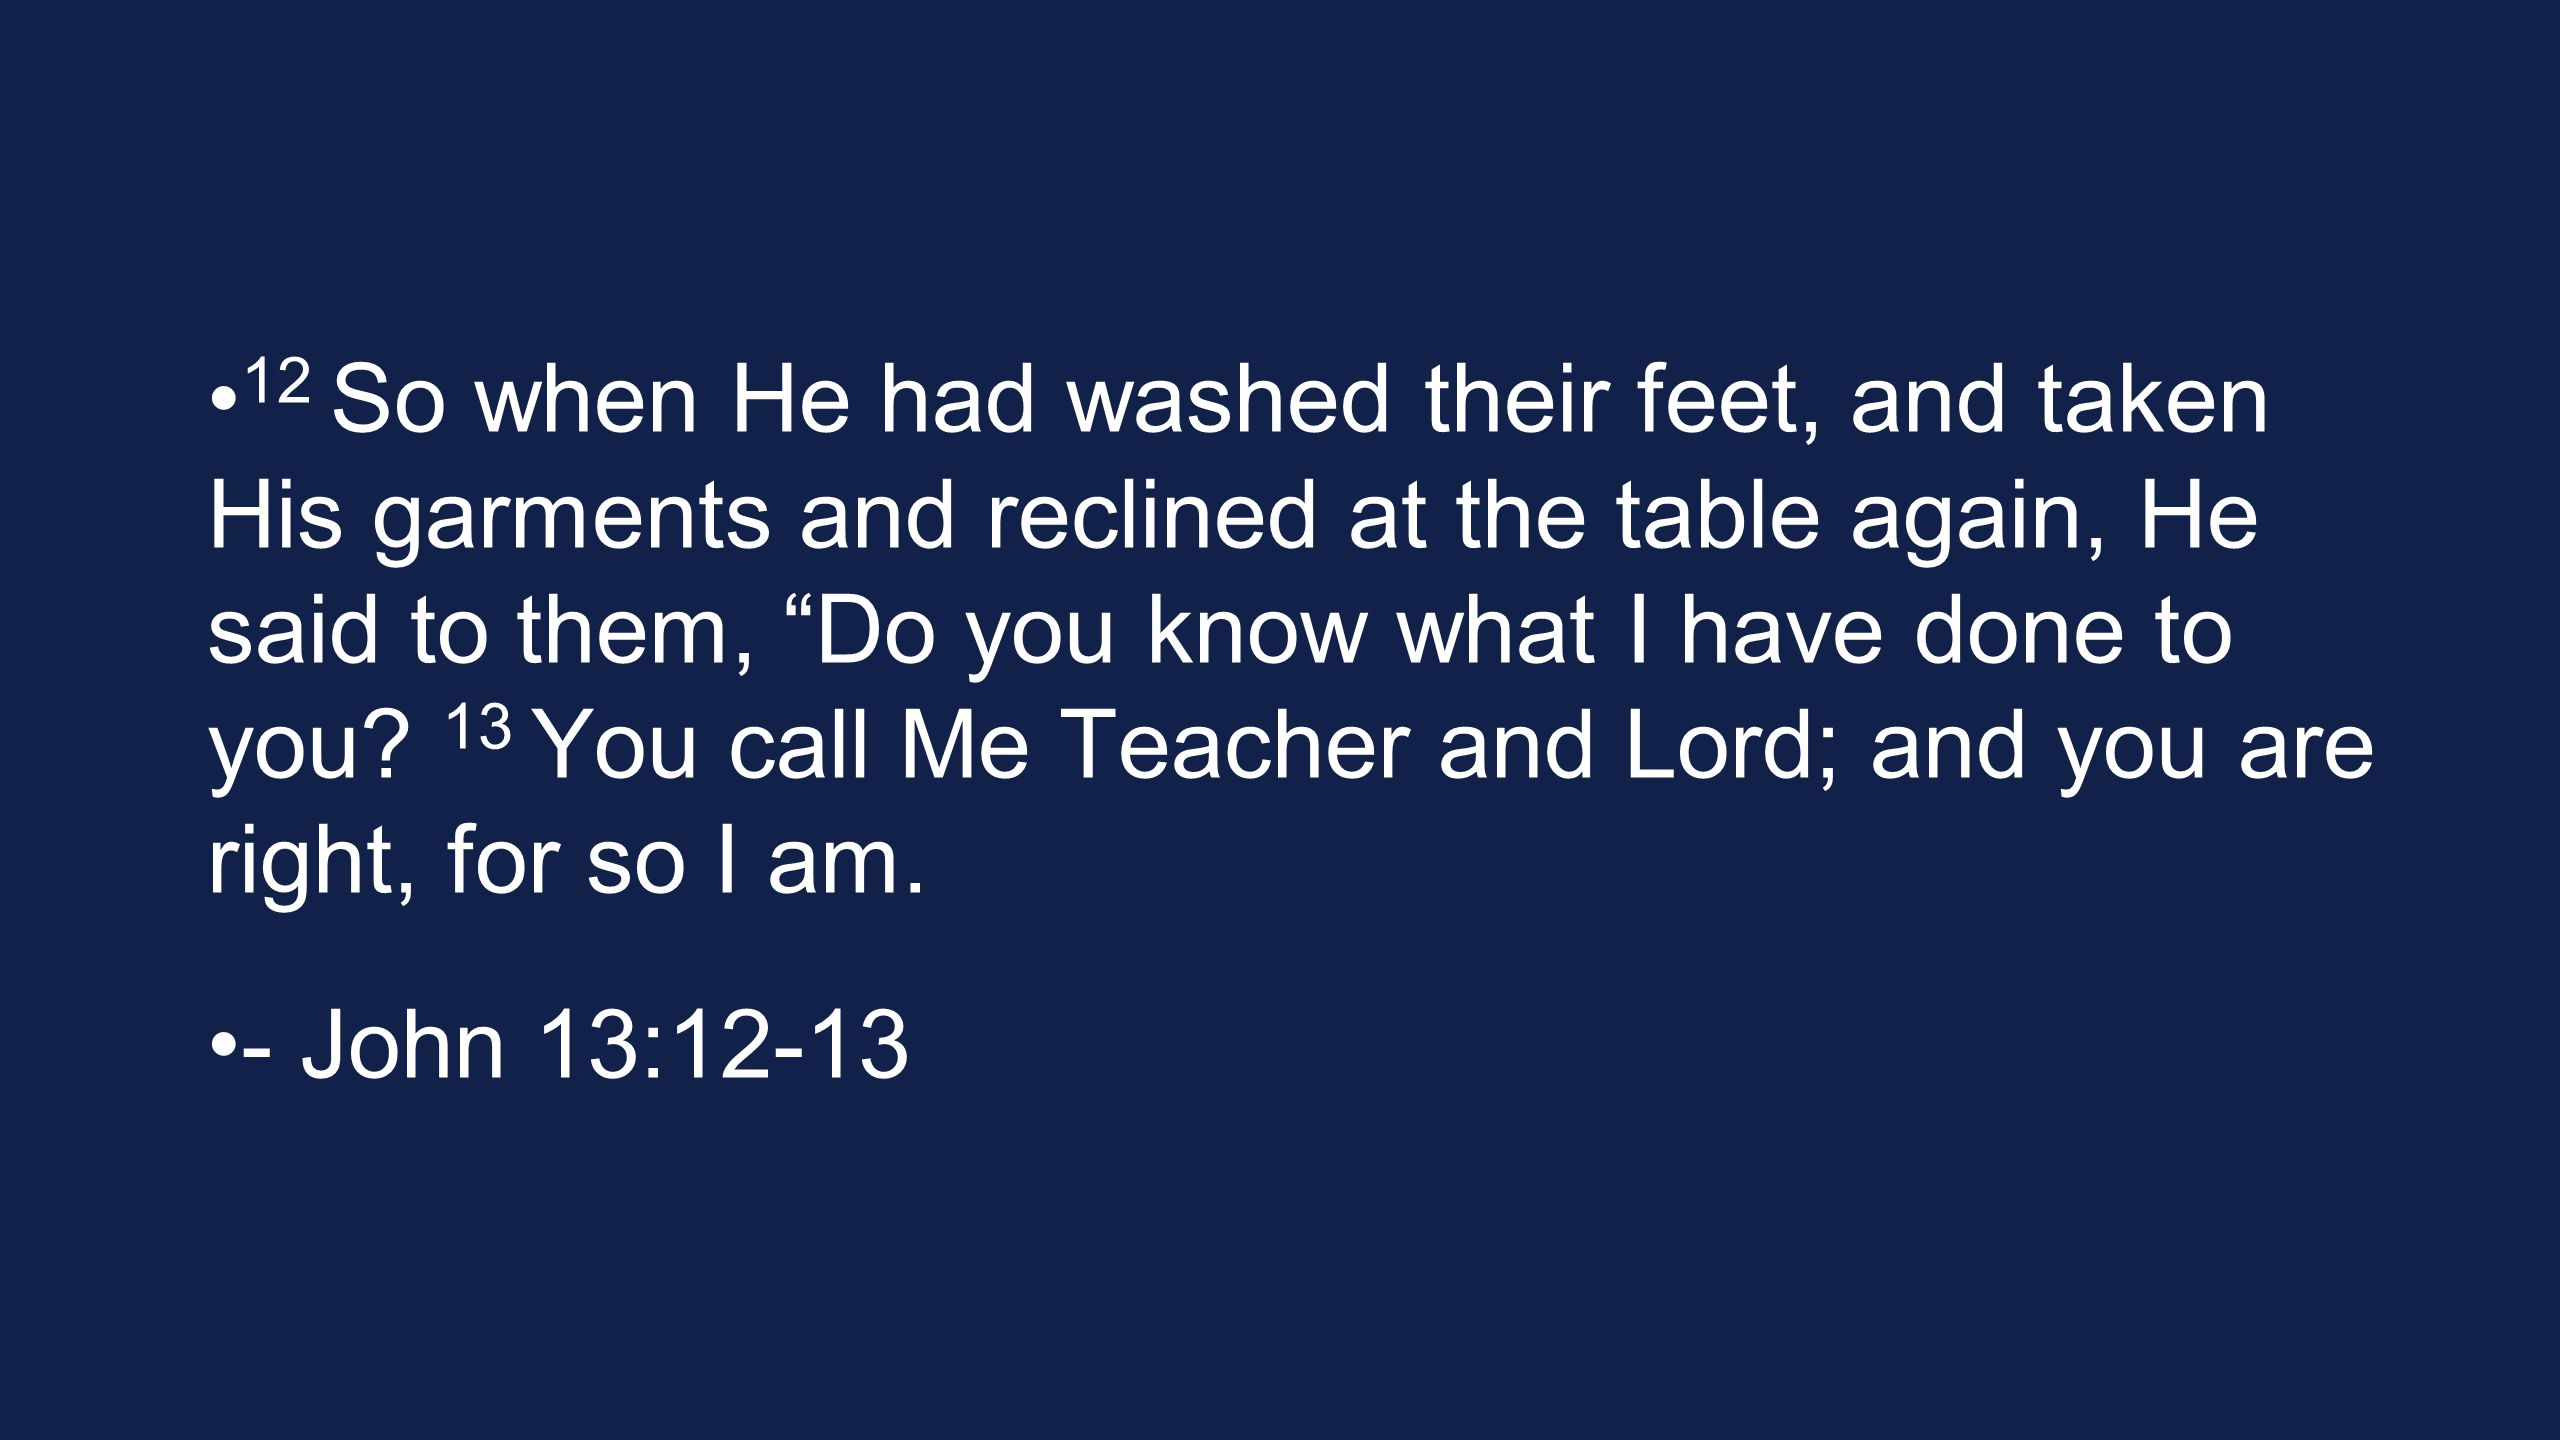 12 So when He had washed their feet, and taken His garments and reclined at the table again, He said to them, Do you know what I have done to you.